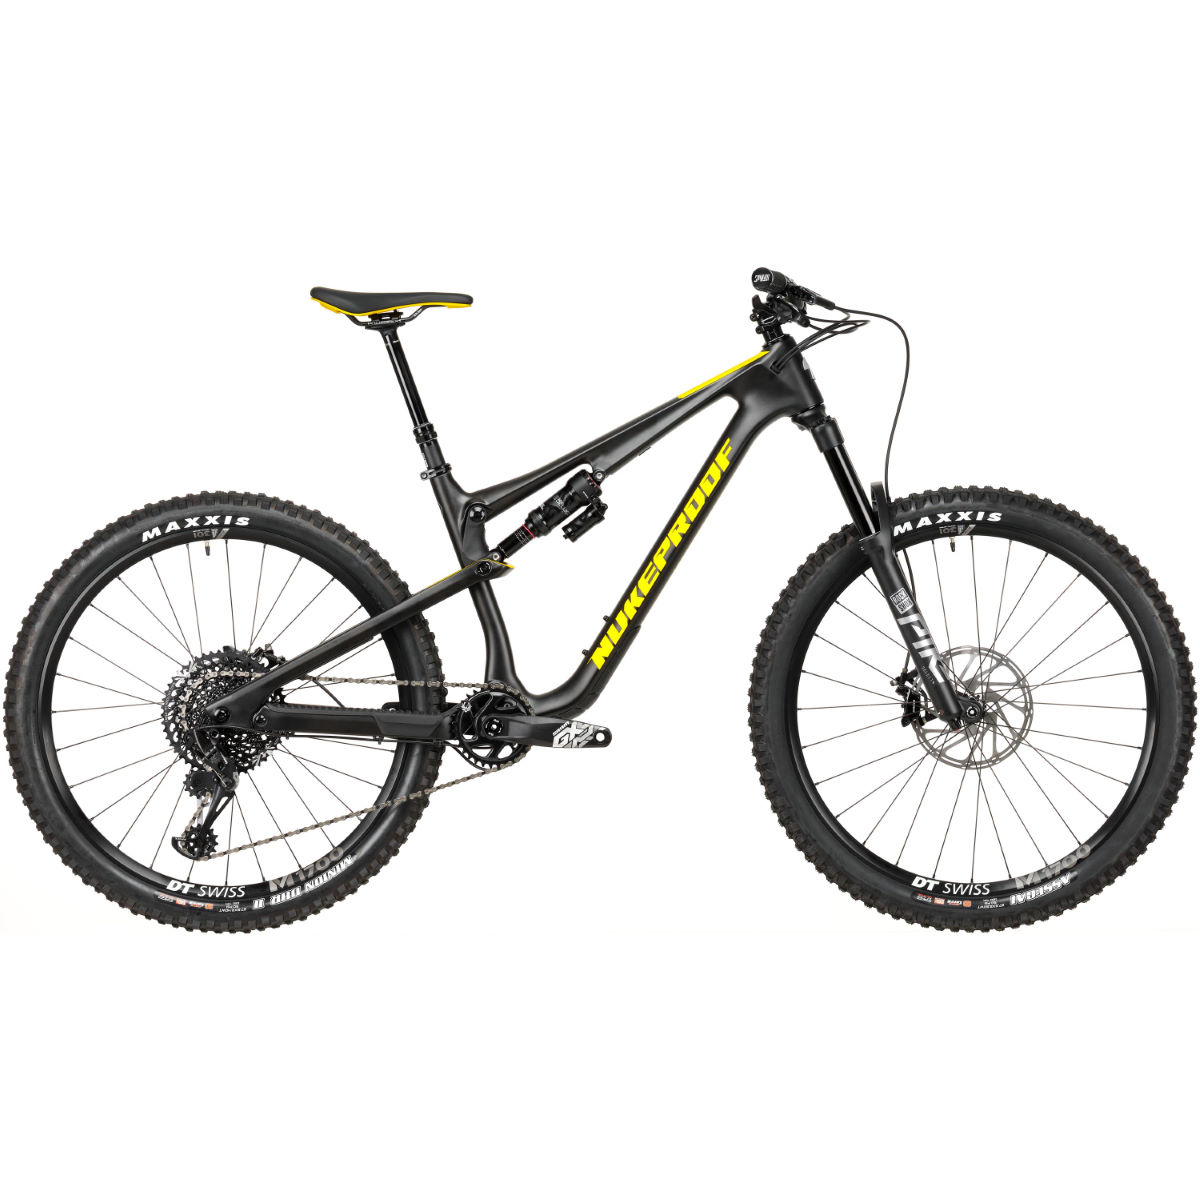 Nukeproof Nukeproof Reactor 275 Pro Carbon Bike (GX Eagle - 2020)   Full Suspension Mountain Bikes